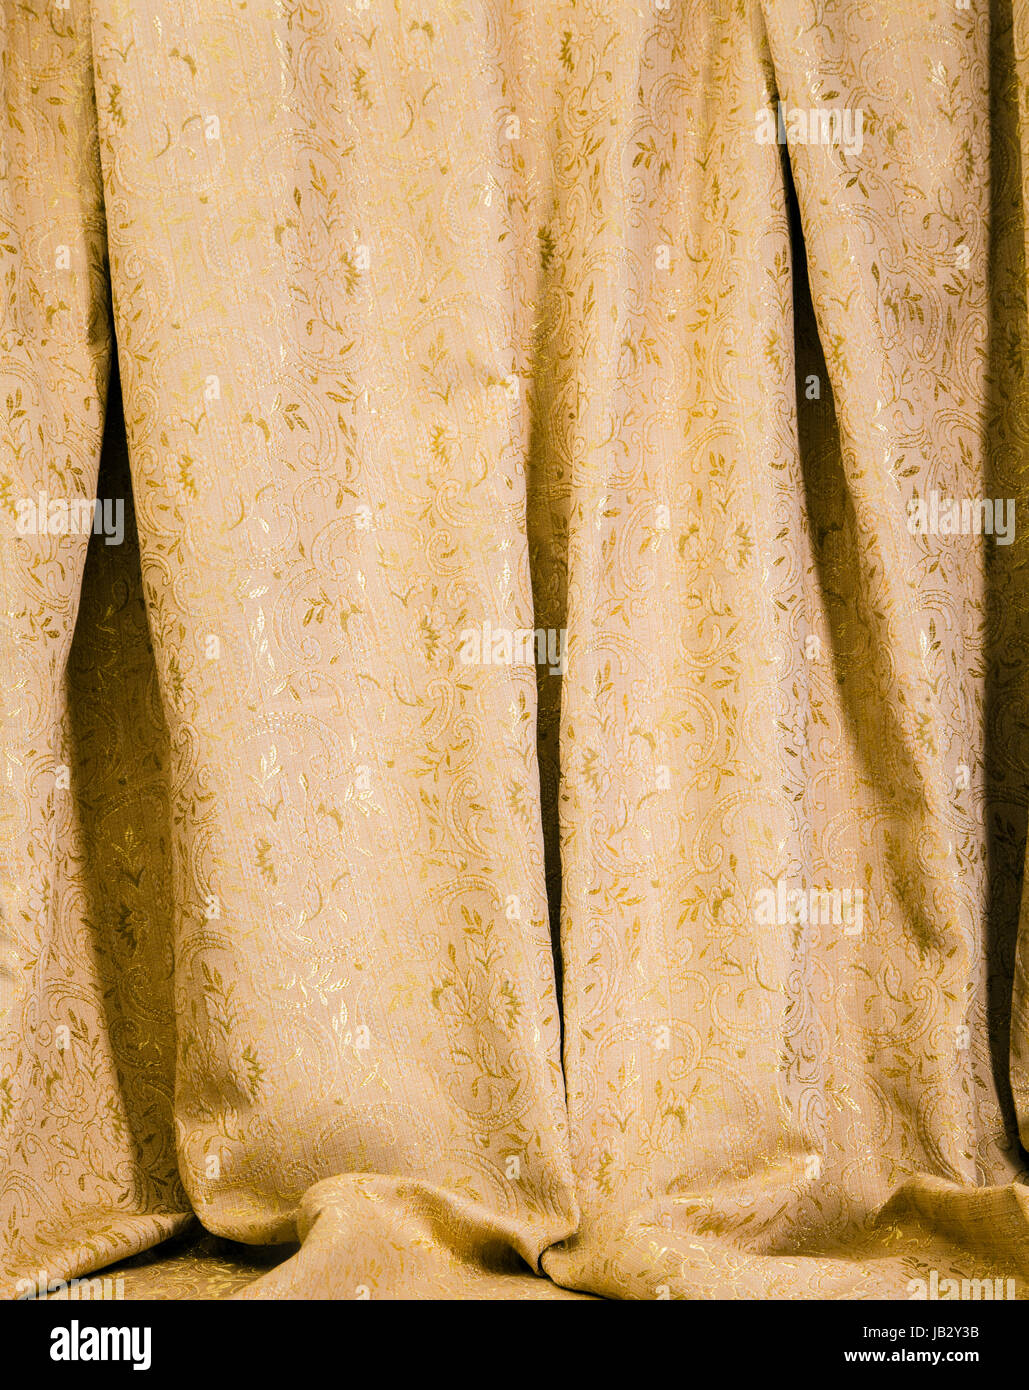 Hanging Drapes hanging drapes of gold damask with a luxurious pattern of shiny